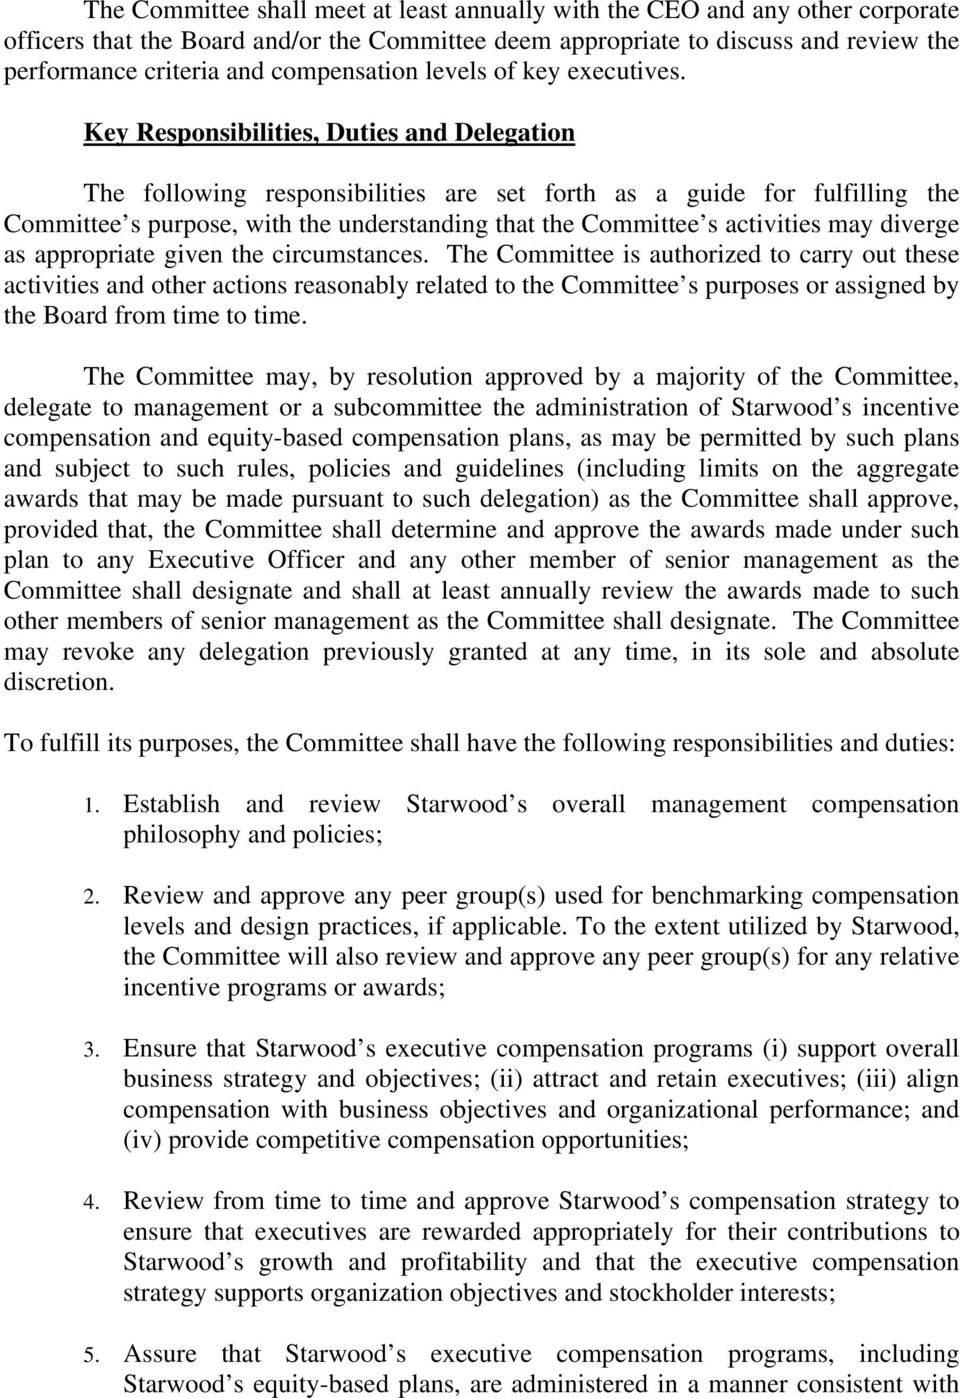 Key Responsibilities, Duties and Delegation The following responsibilities are set forth as a guide for fulfilling the Committee s purpose, with the understanding that the Committee s activities may